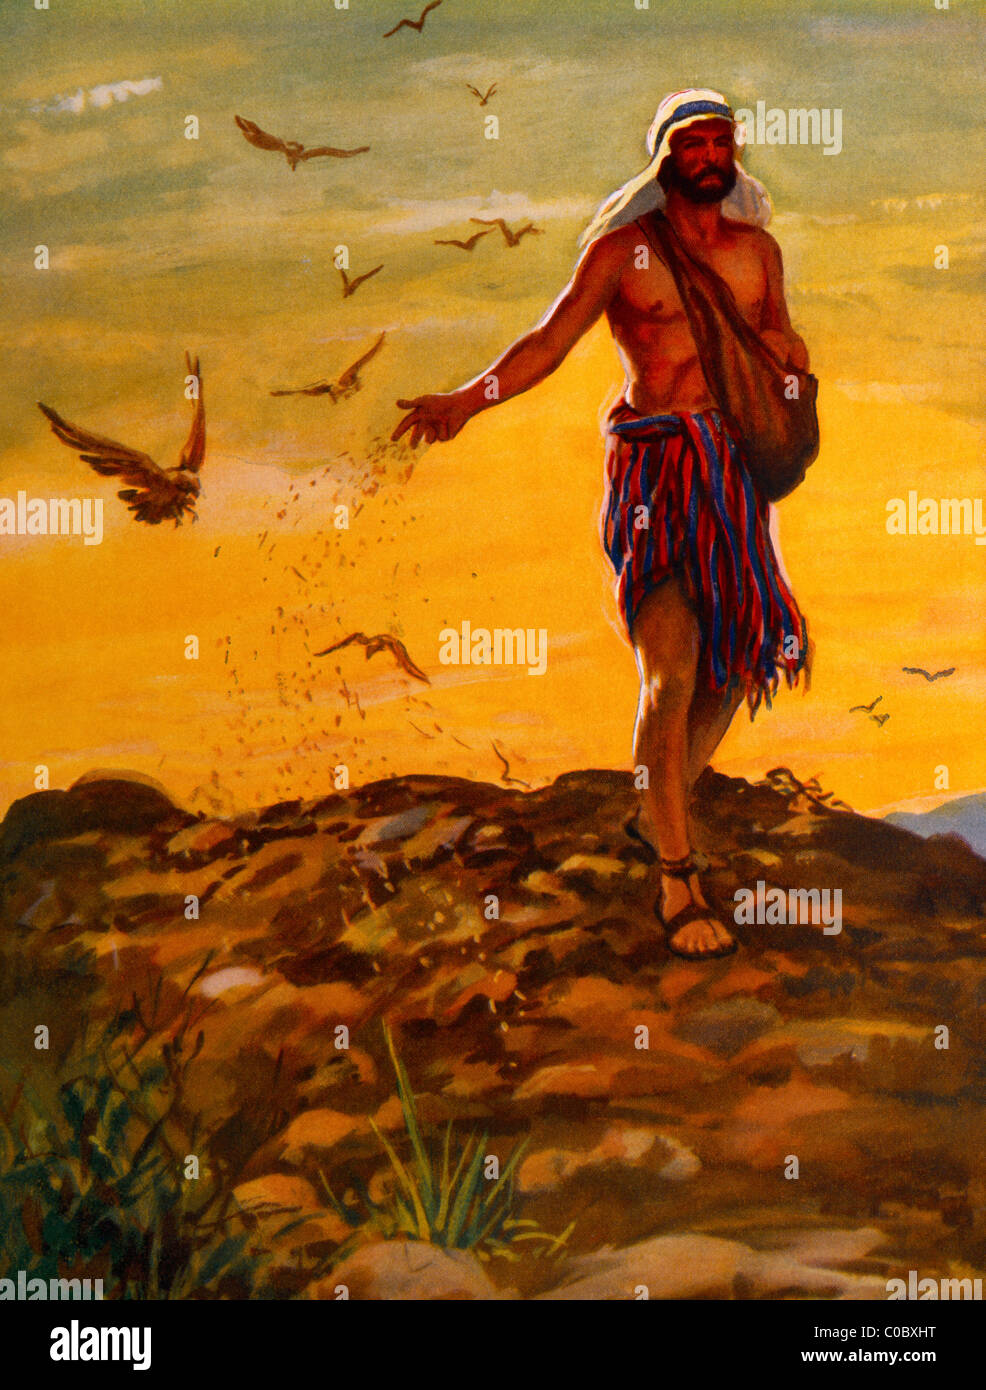 the sower stock photos u0026 the sower stock images alamy